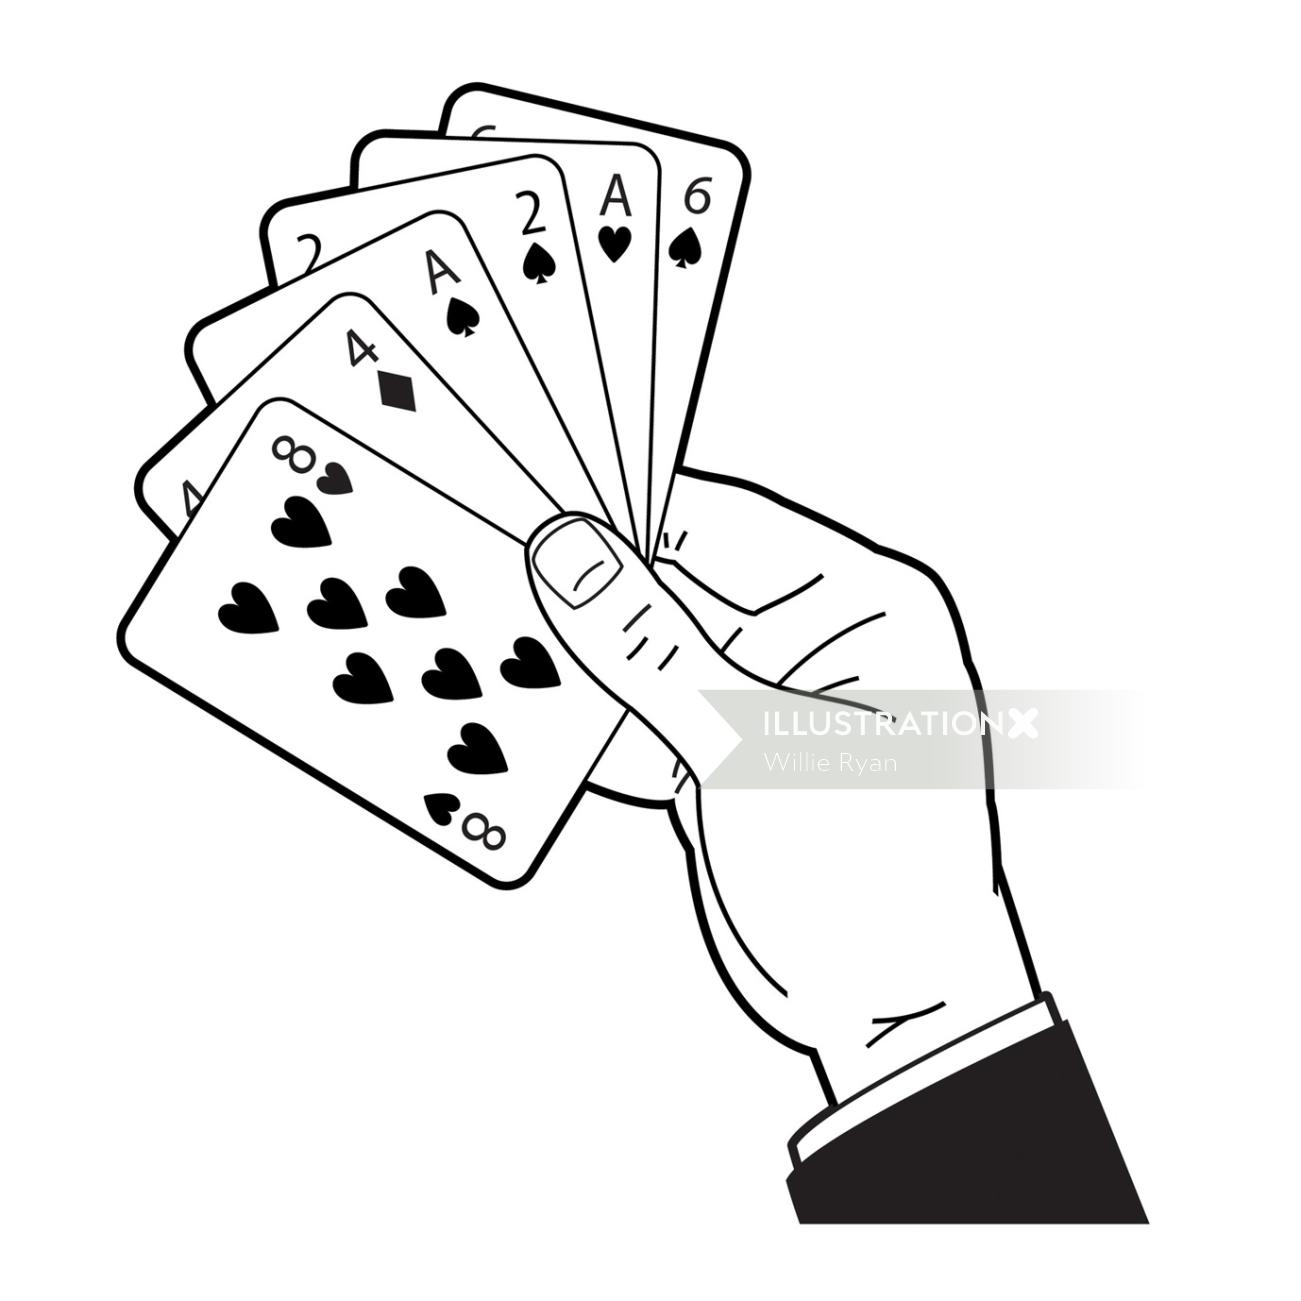 Willie,Ryan,illustrator,illustration,graphic,children's book, hand of cards, black and white,trick,g